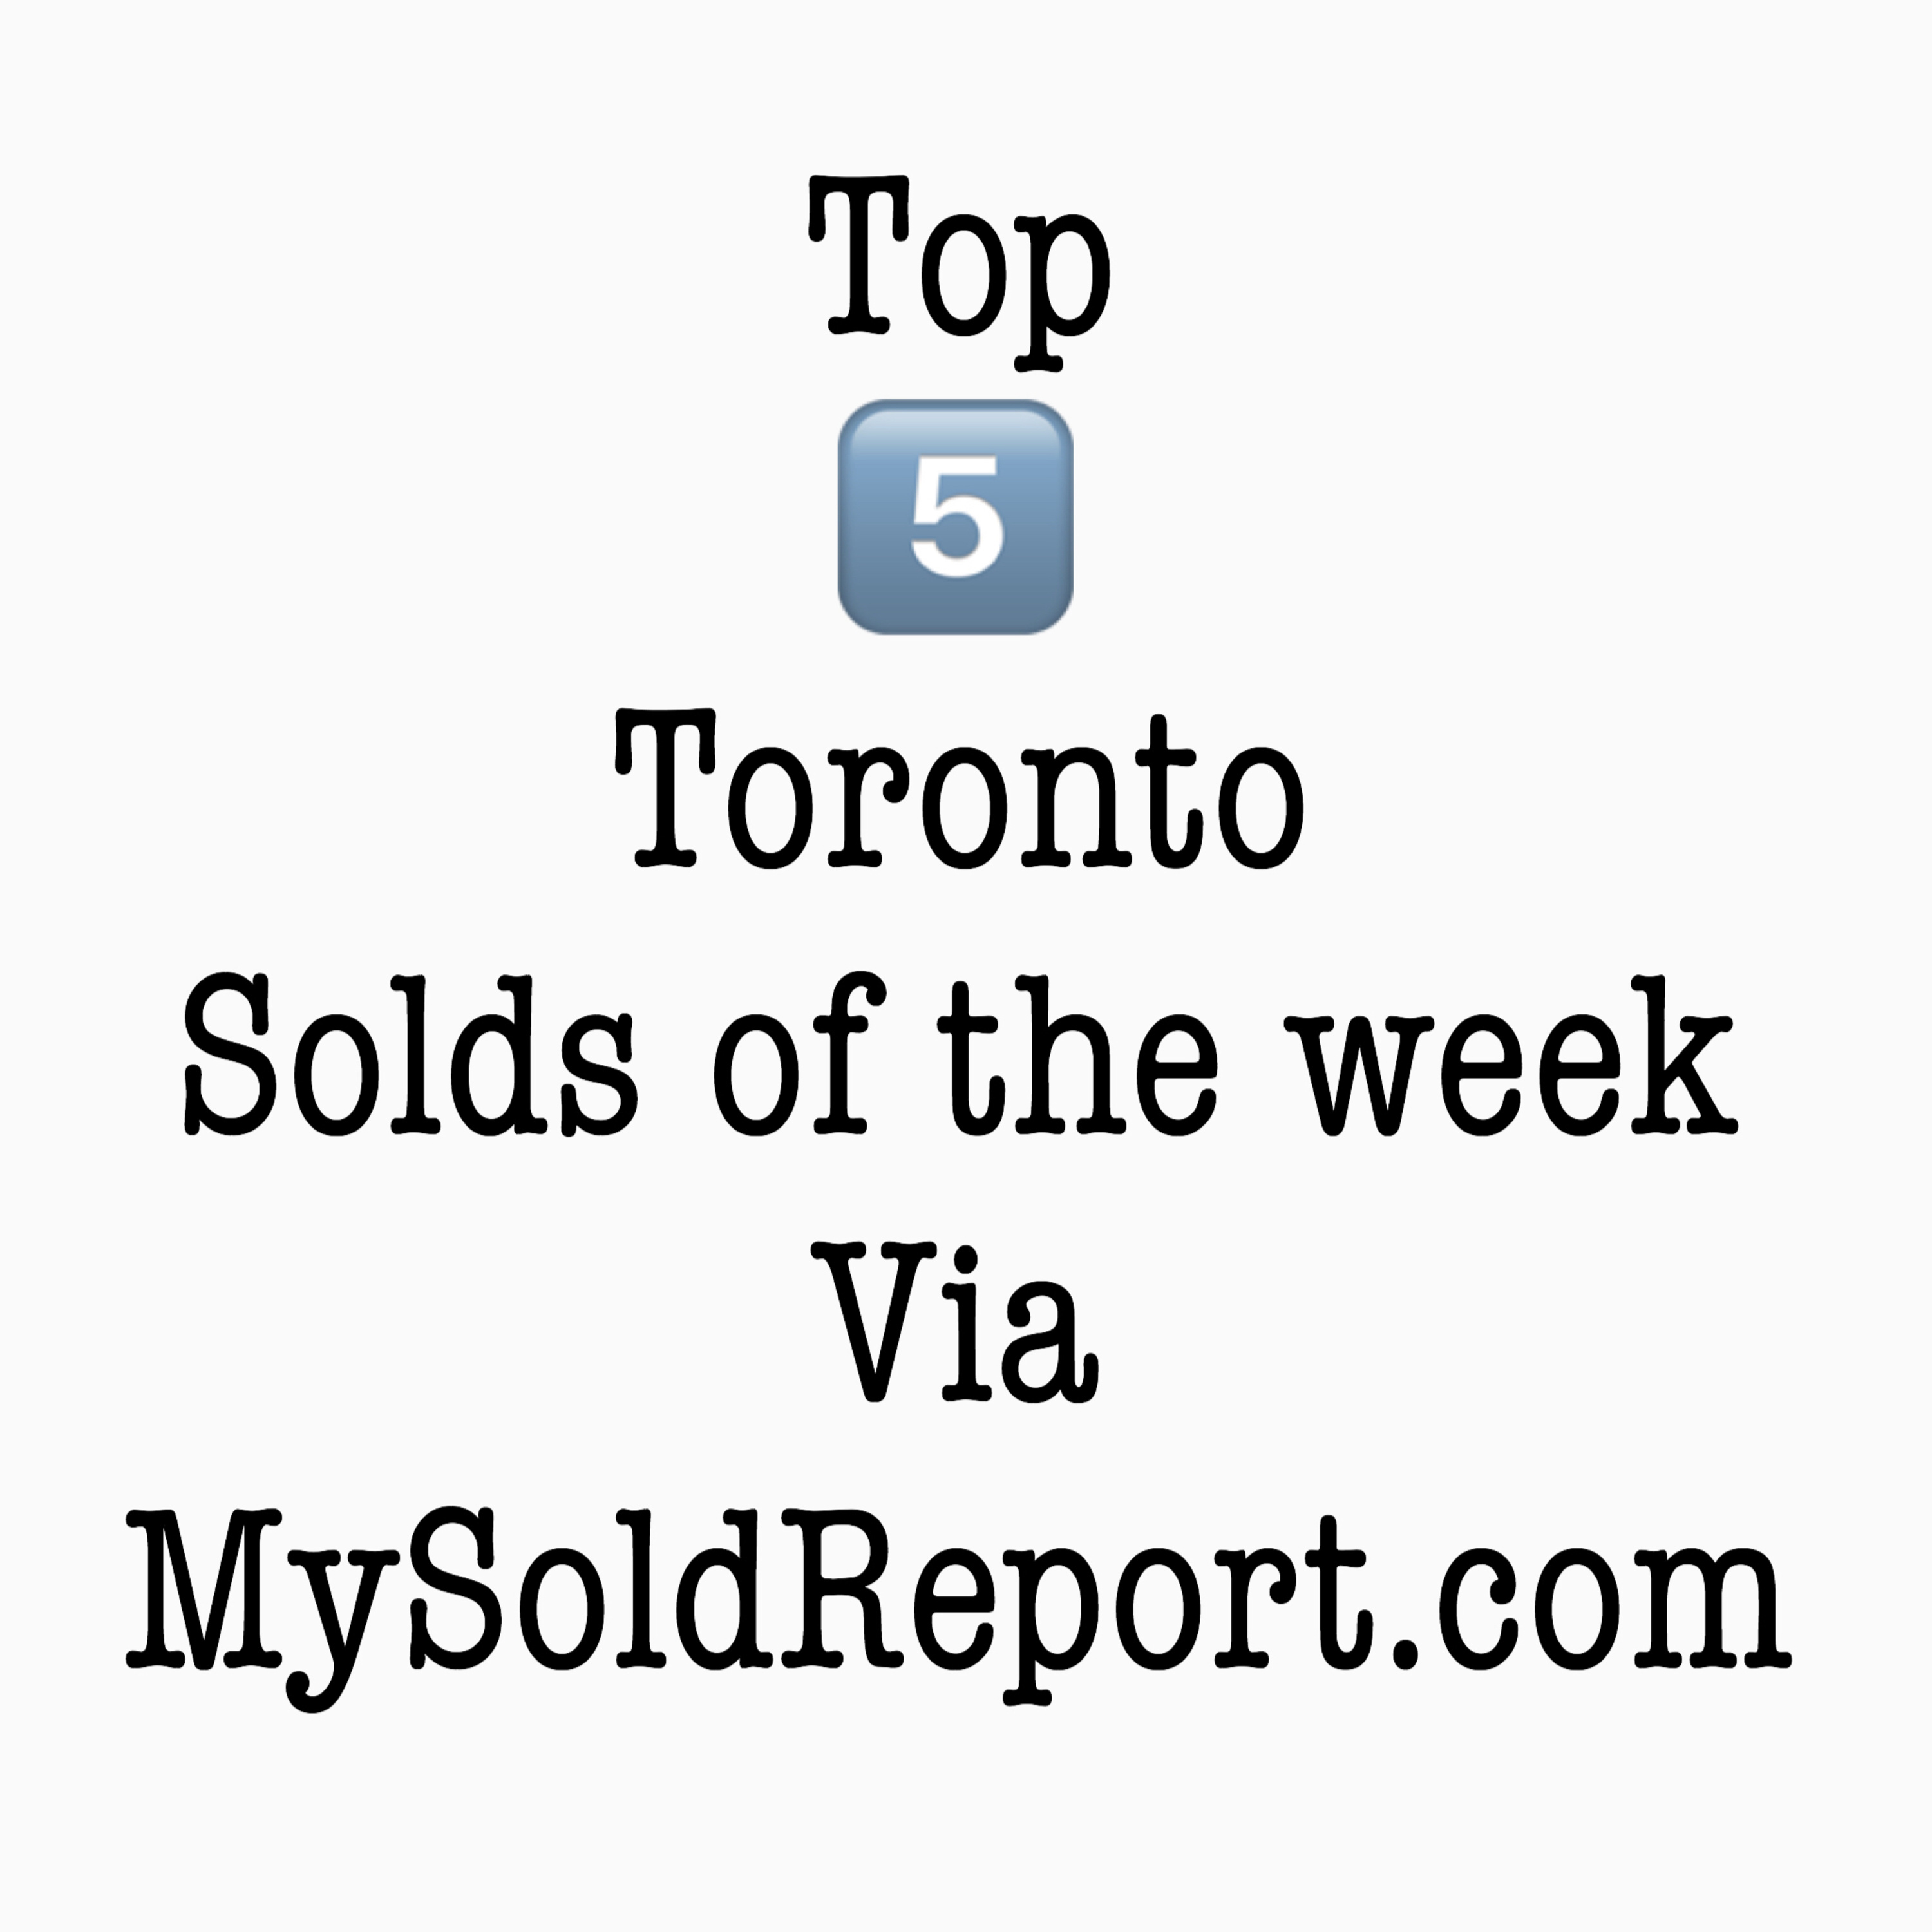 Episode 116: Friday Top 5 Solds in Toronto for July 12-19